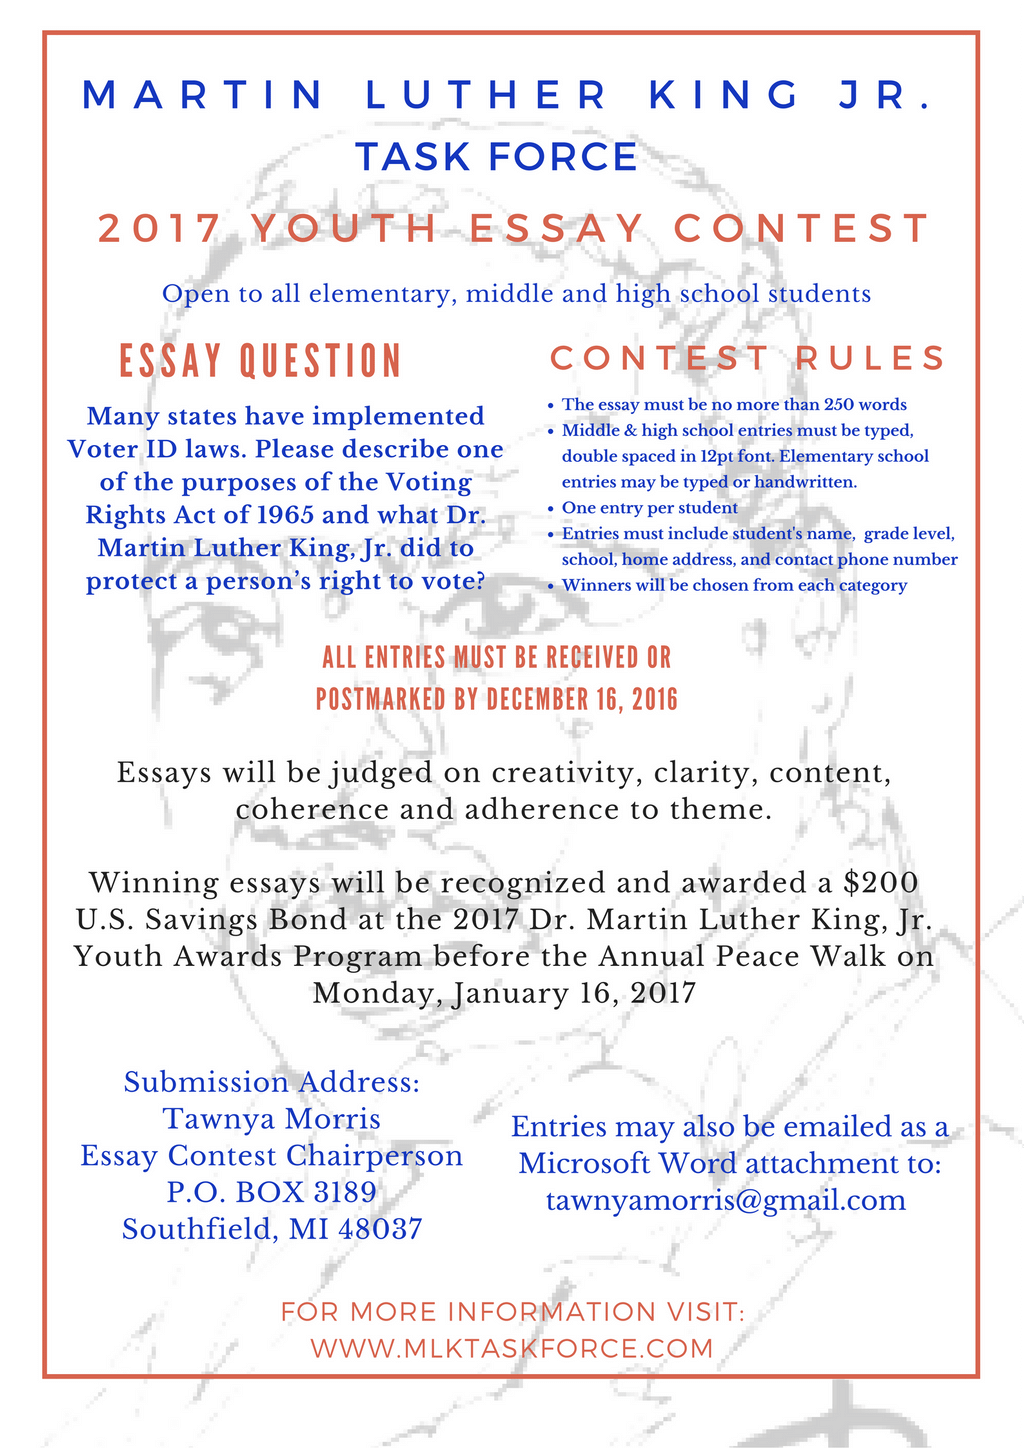 dr martin luther king jr task force inc the flyer for our 2017 youth essay contest learn more